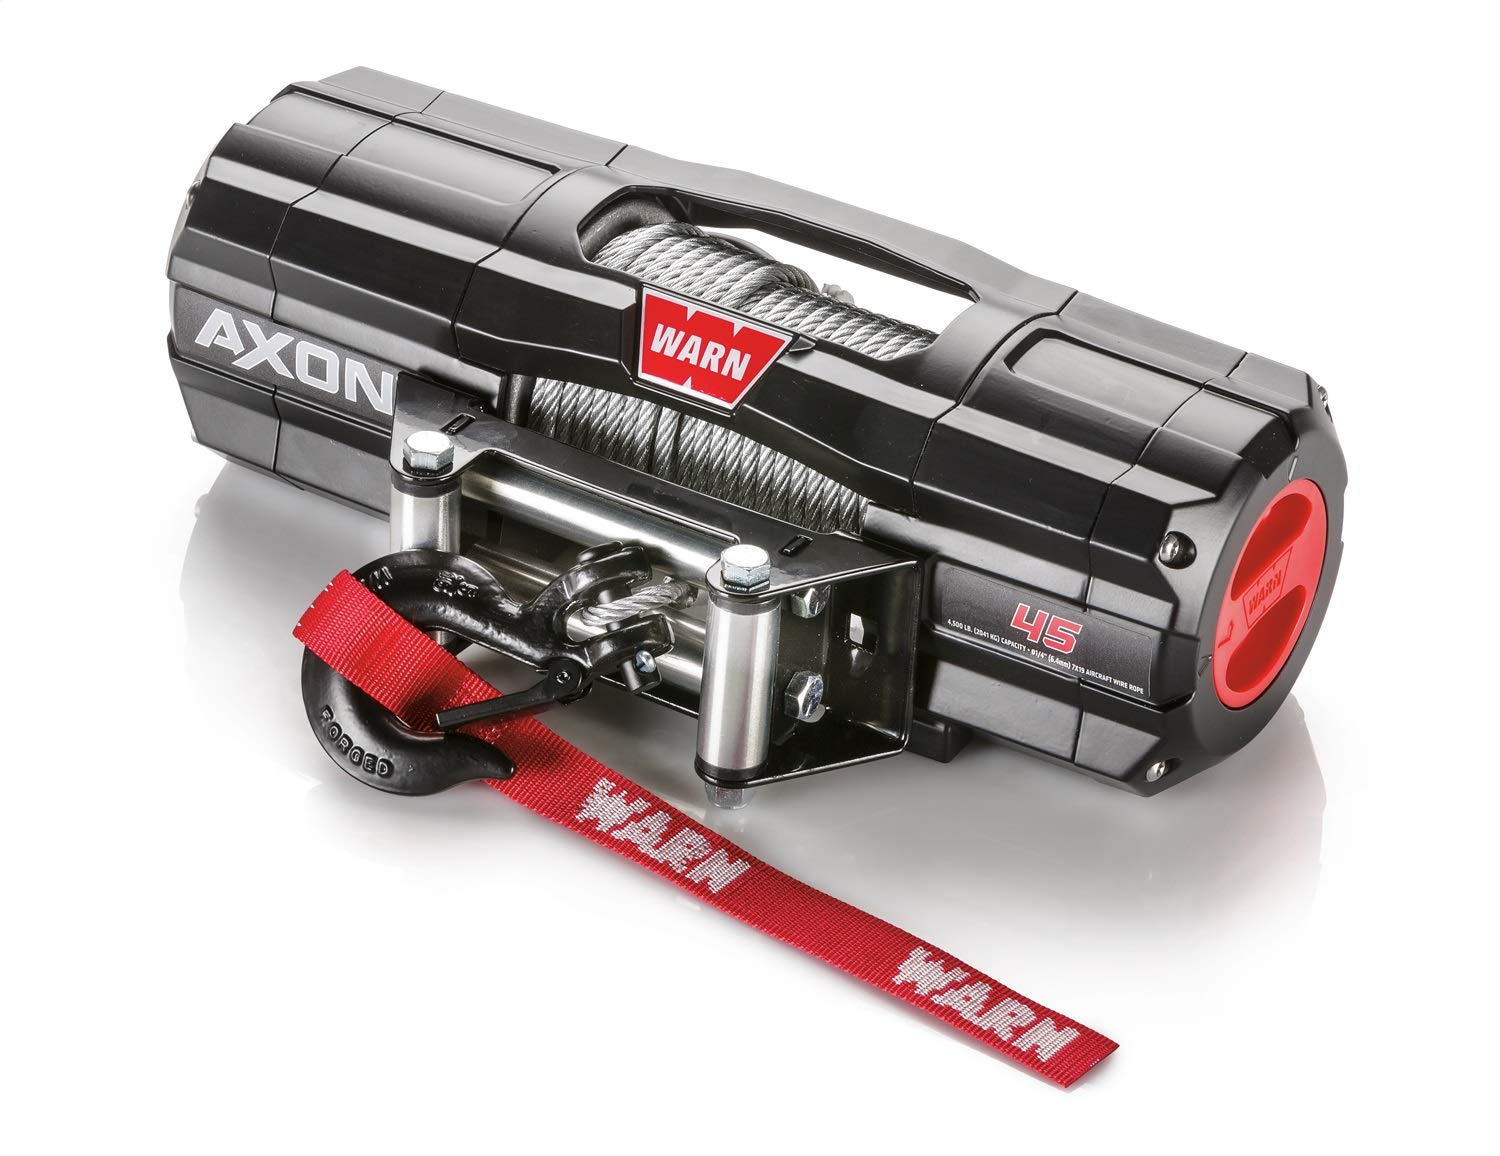 WARN 101145 AXON 45 Powersports Winch With Steel Rope